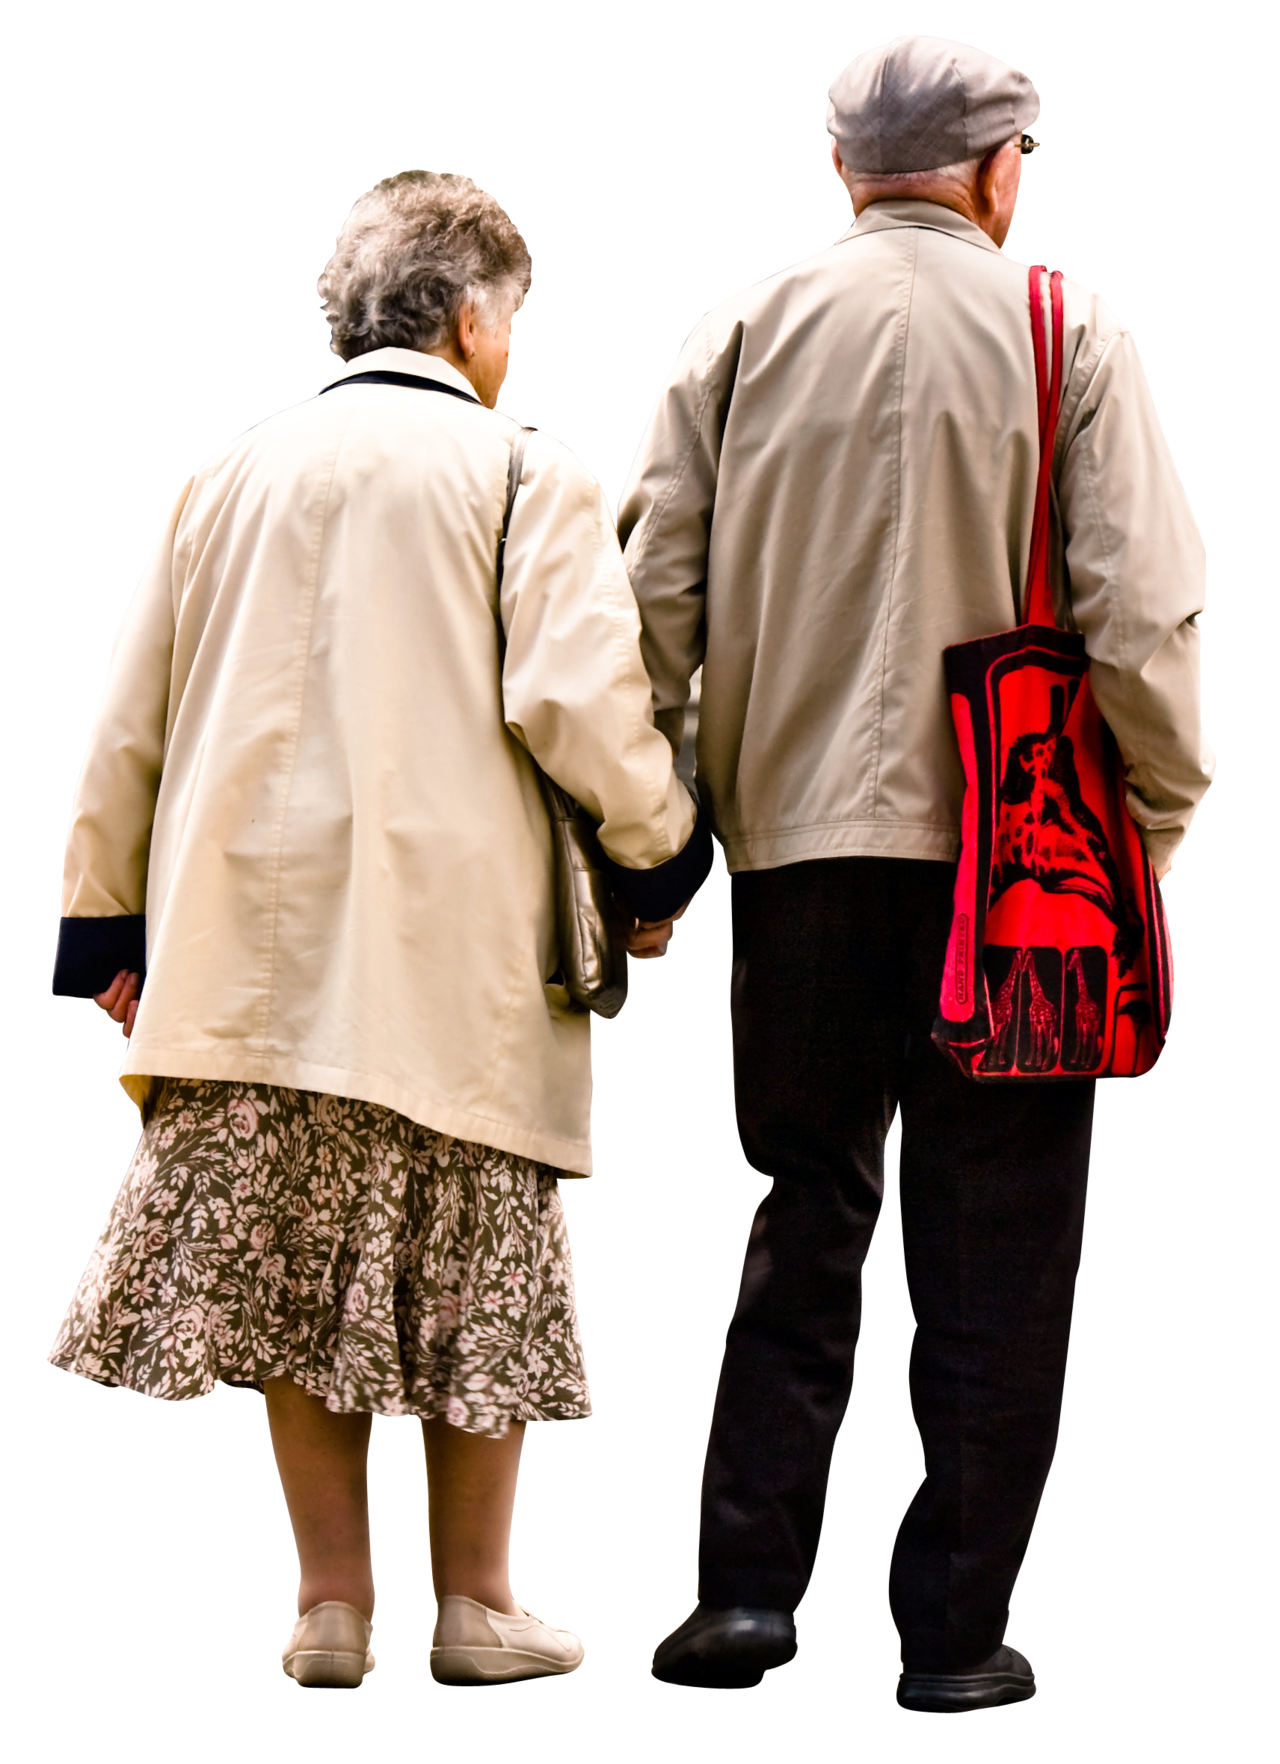 Elderly couple png. Holding hands walking garry